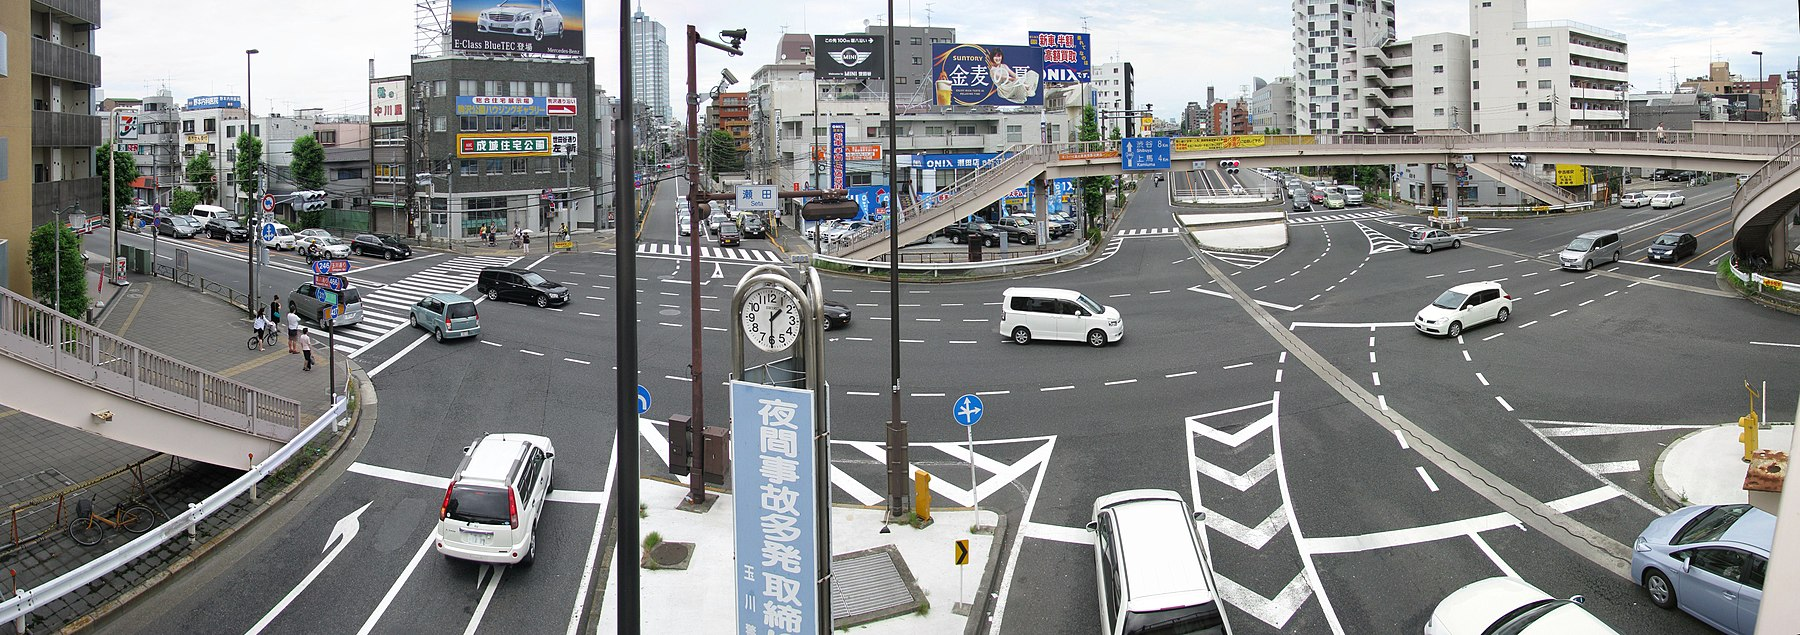 Seta Intersection 01.jpg